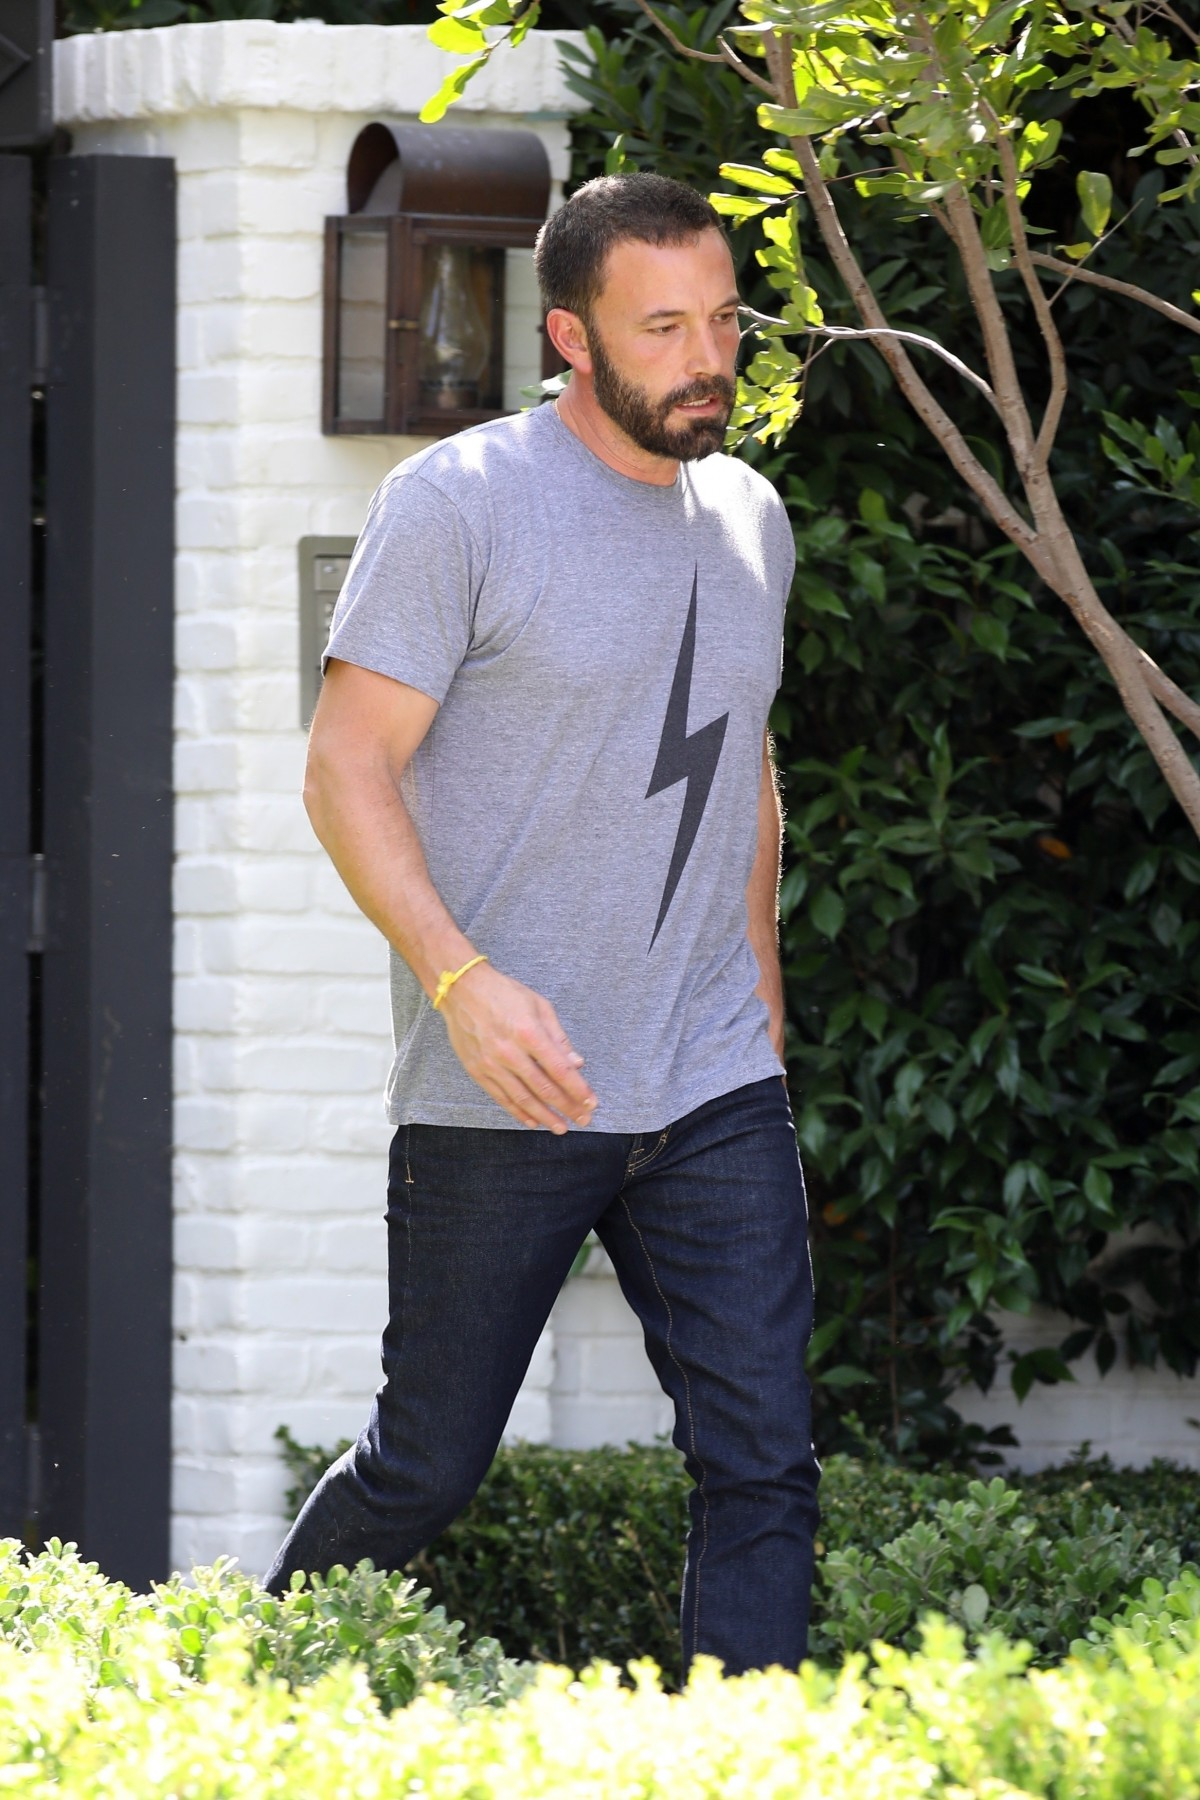 Ben Affleck celebrates his birthday in private with girlfriend Ana De Armas